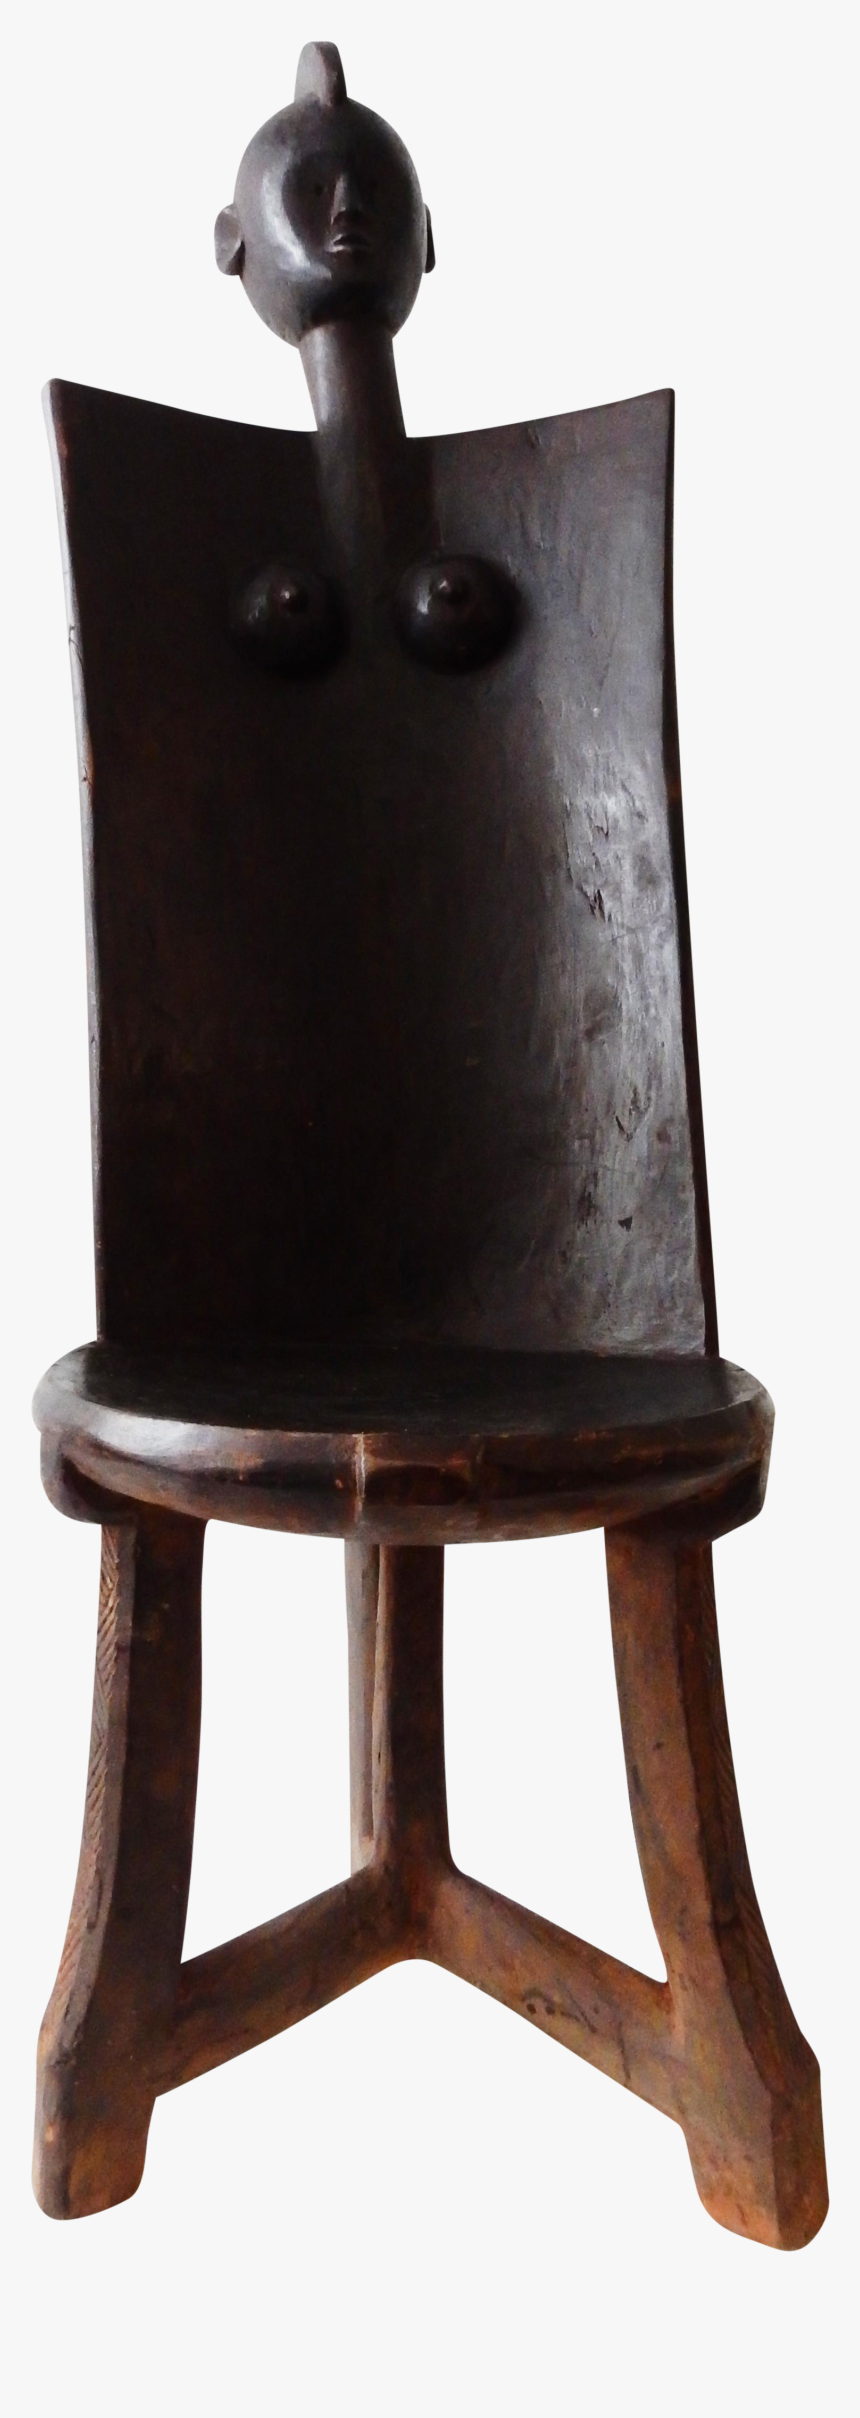 Transparent Three Legged Stool Png - Chair, Png Download, Free Download